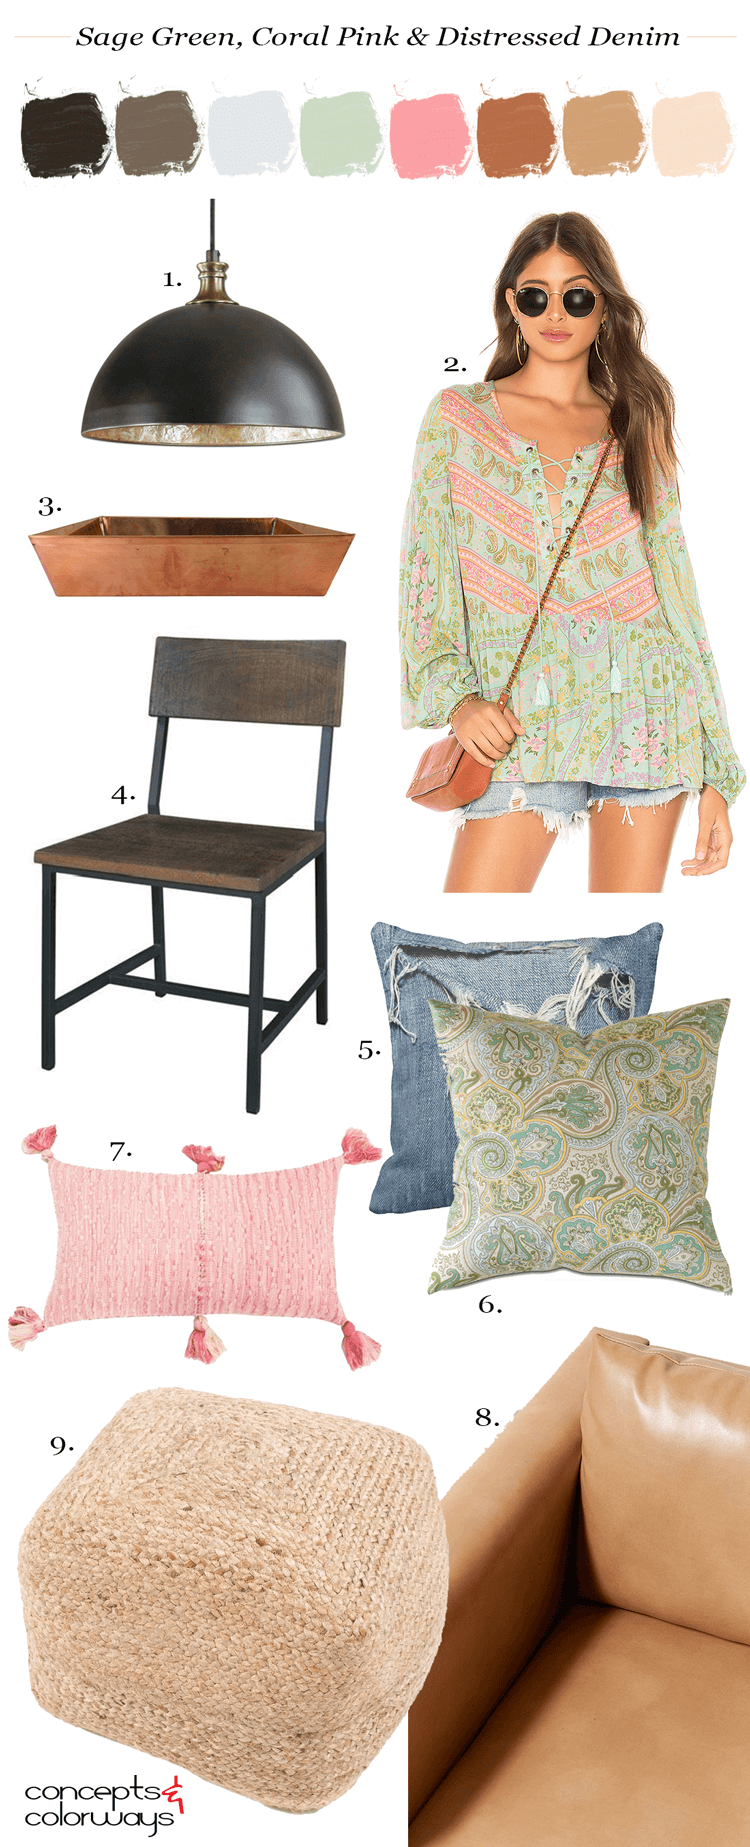 casual living, pink and green, sage green, sage green decor, coral pink, distressed denim, bronze pendant light, copper serving tray, dark wood, paisley pillows, tassel pillow, denim pillows, tan leather sofa, natural fiber pouf, sage green blouse with pink accents, distressed denim cut off shorts